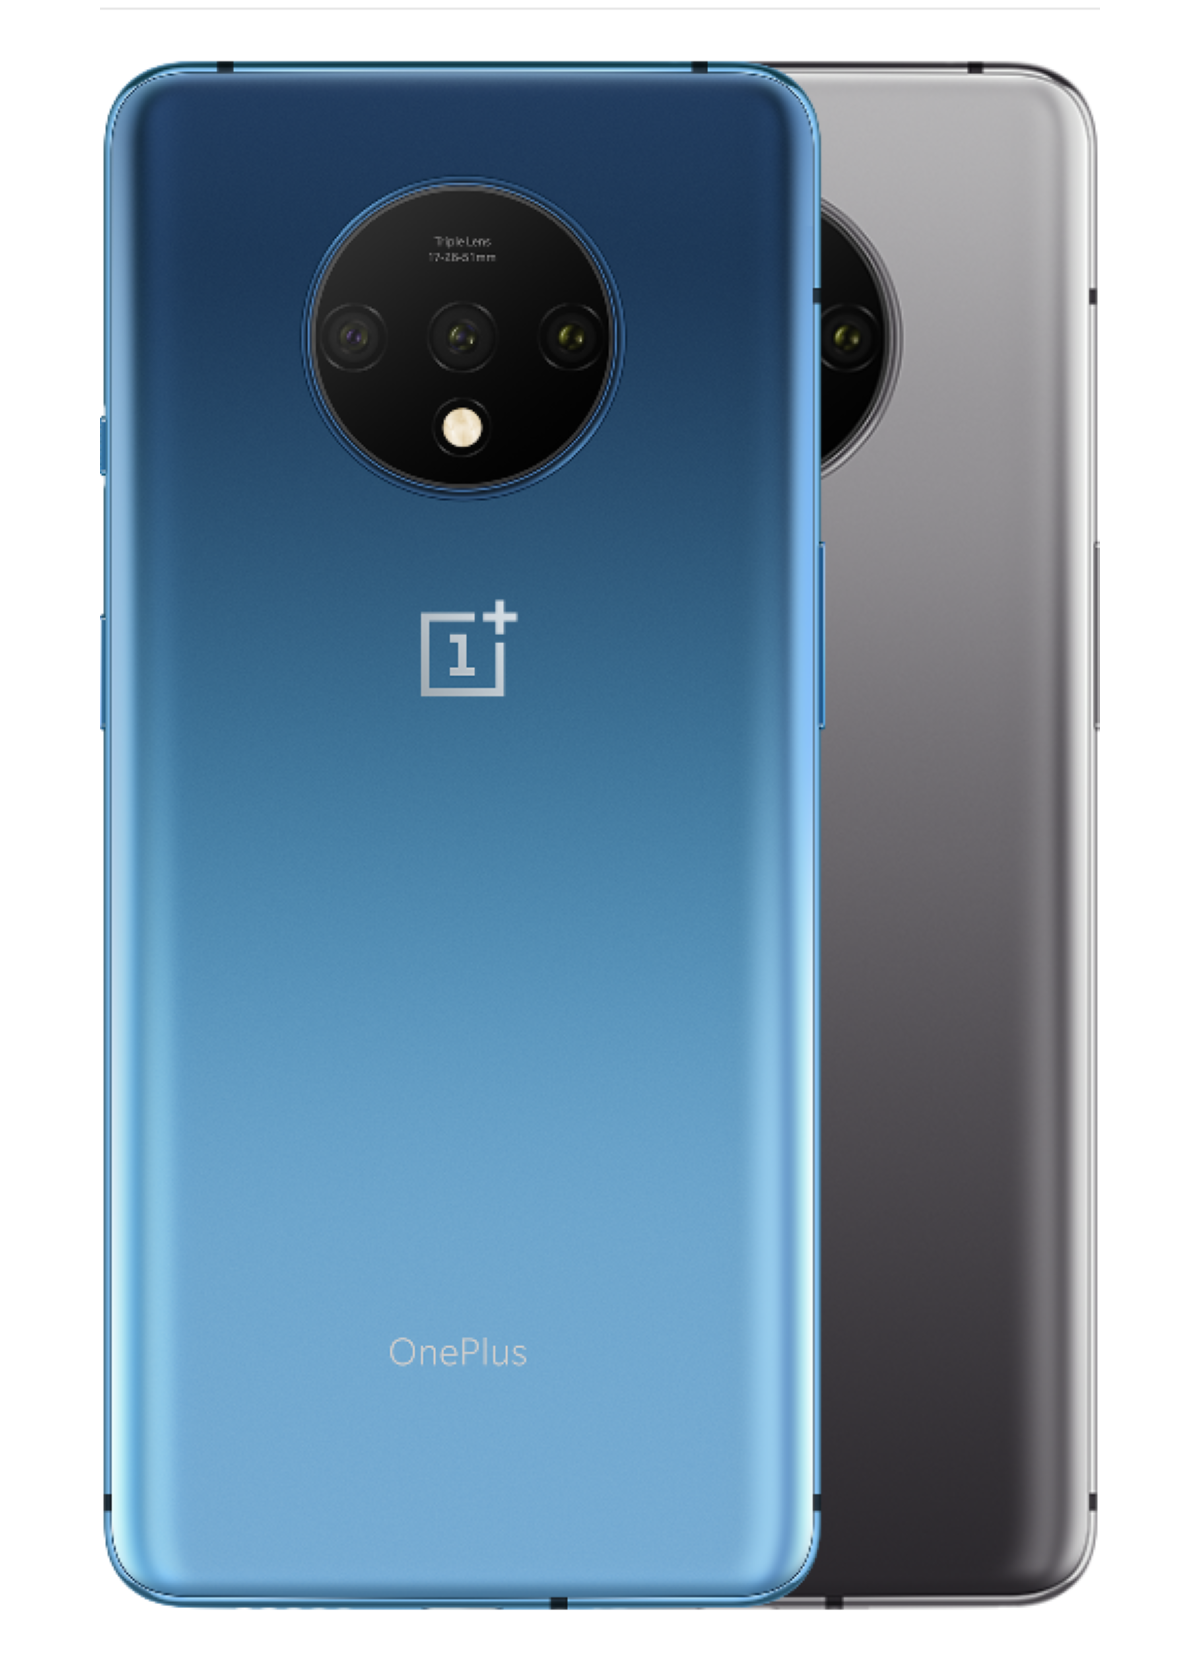 OnePlus 7T - 2 Different Color Models